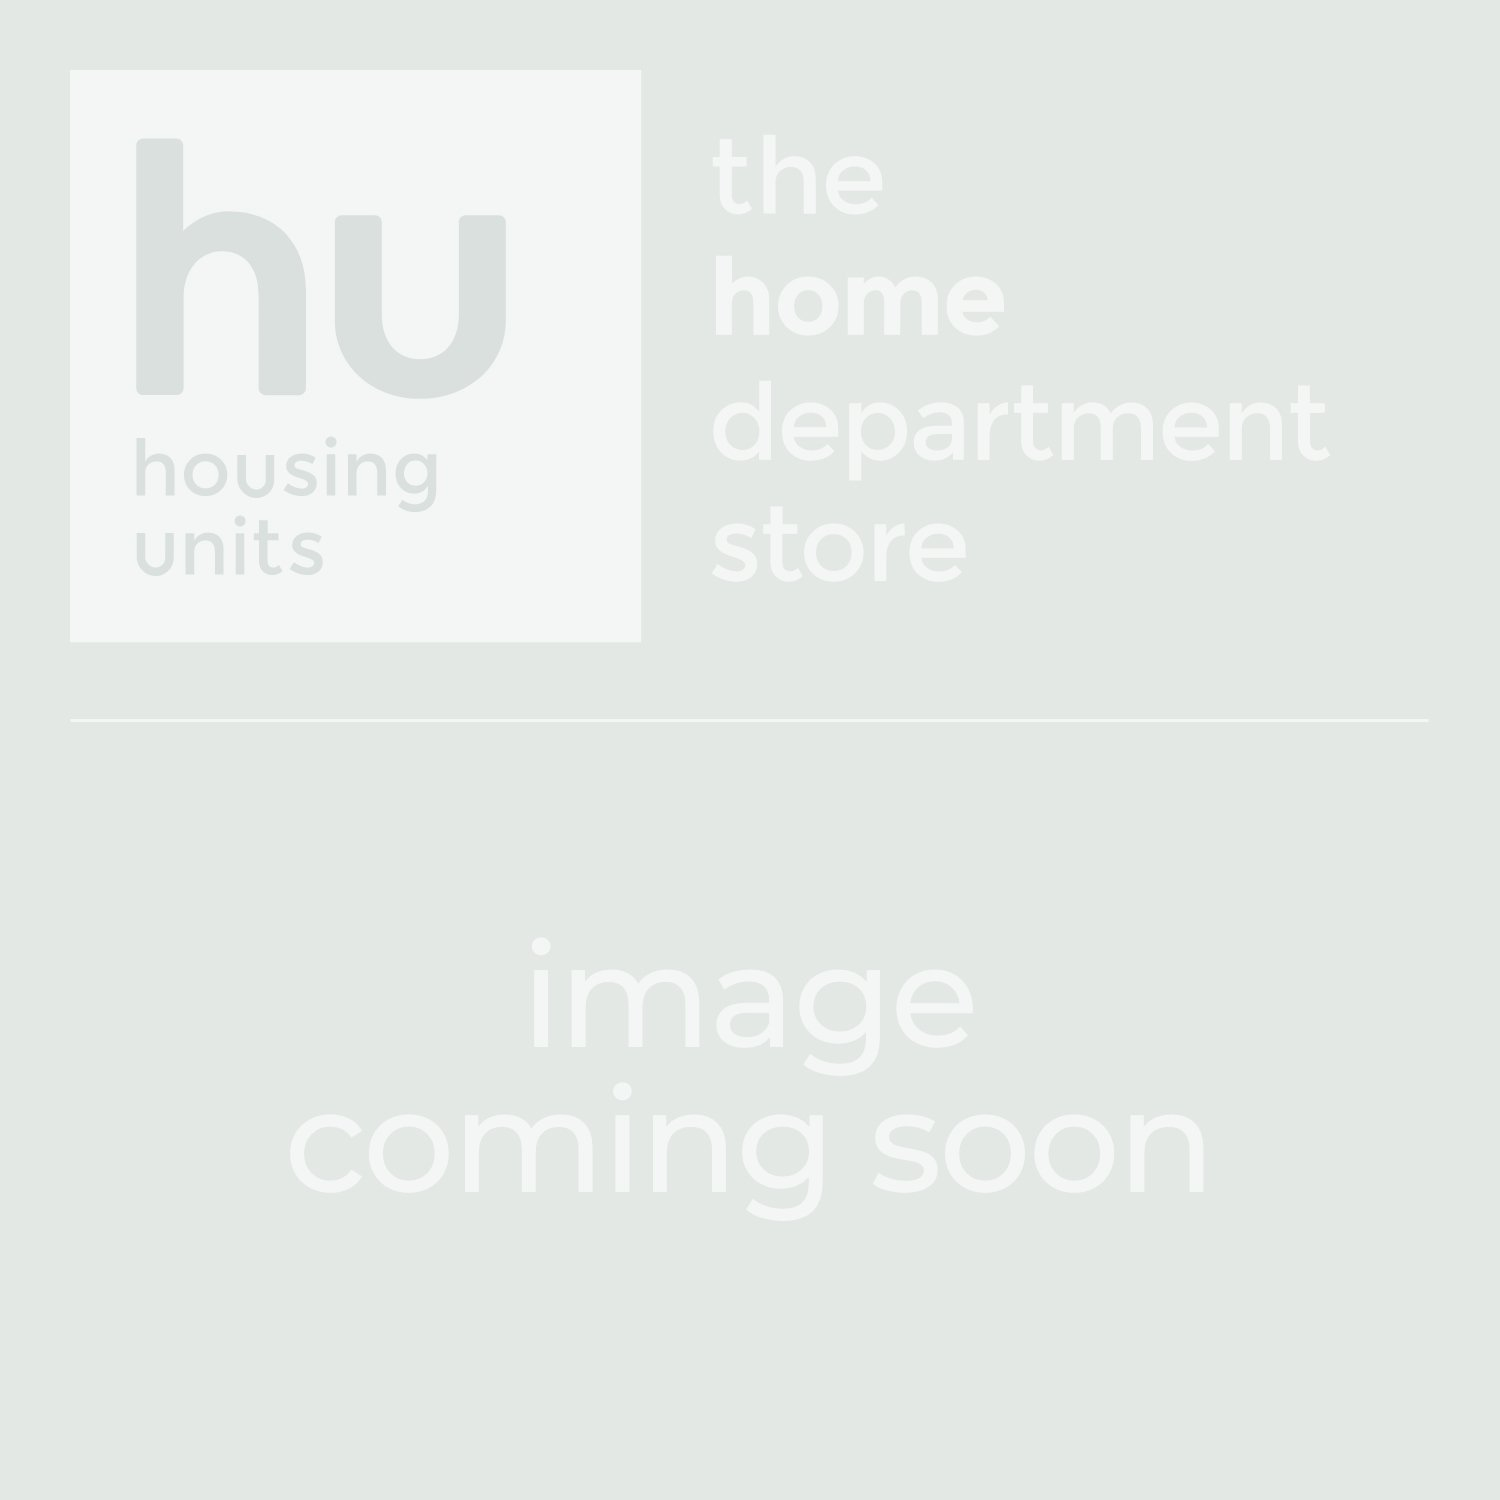 The Mamas and Papas Sail Away With Me Quilt has a playful character print and features a friendly whale character that your little one is sure to love.